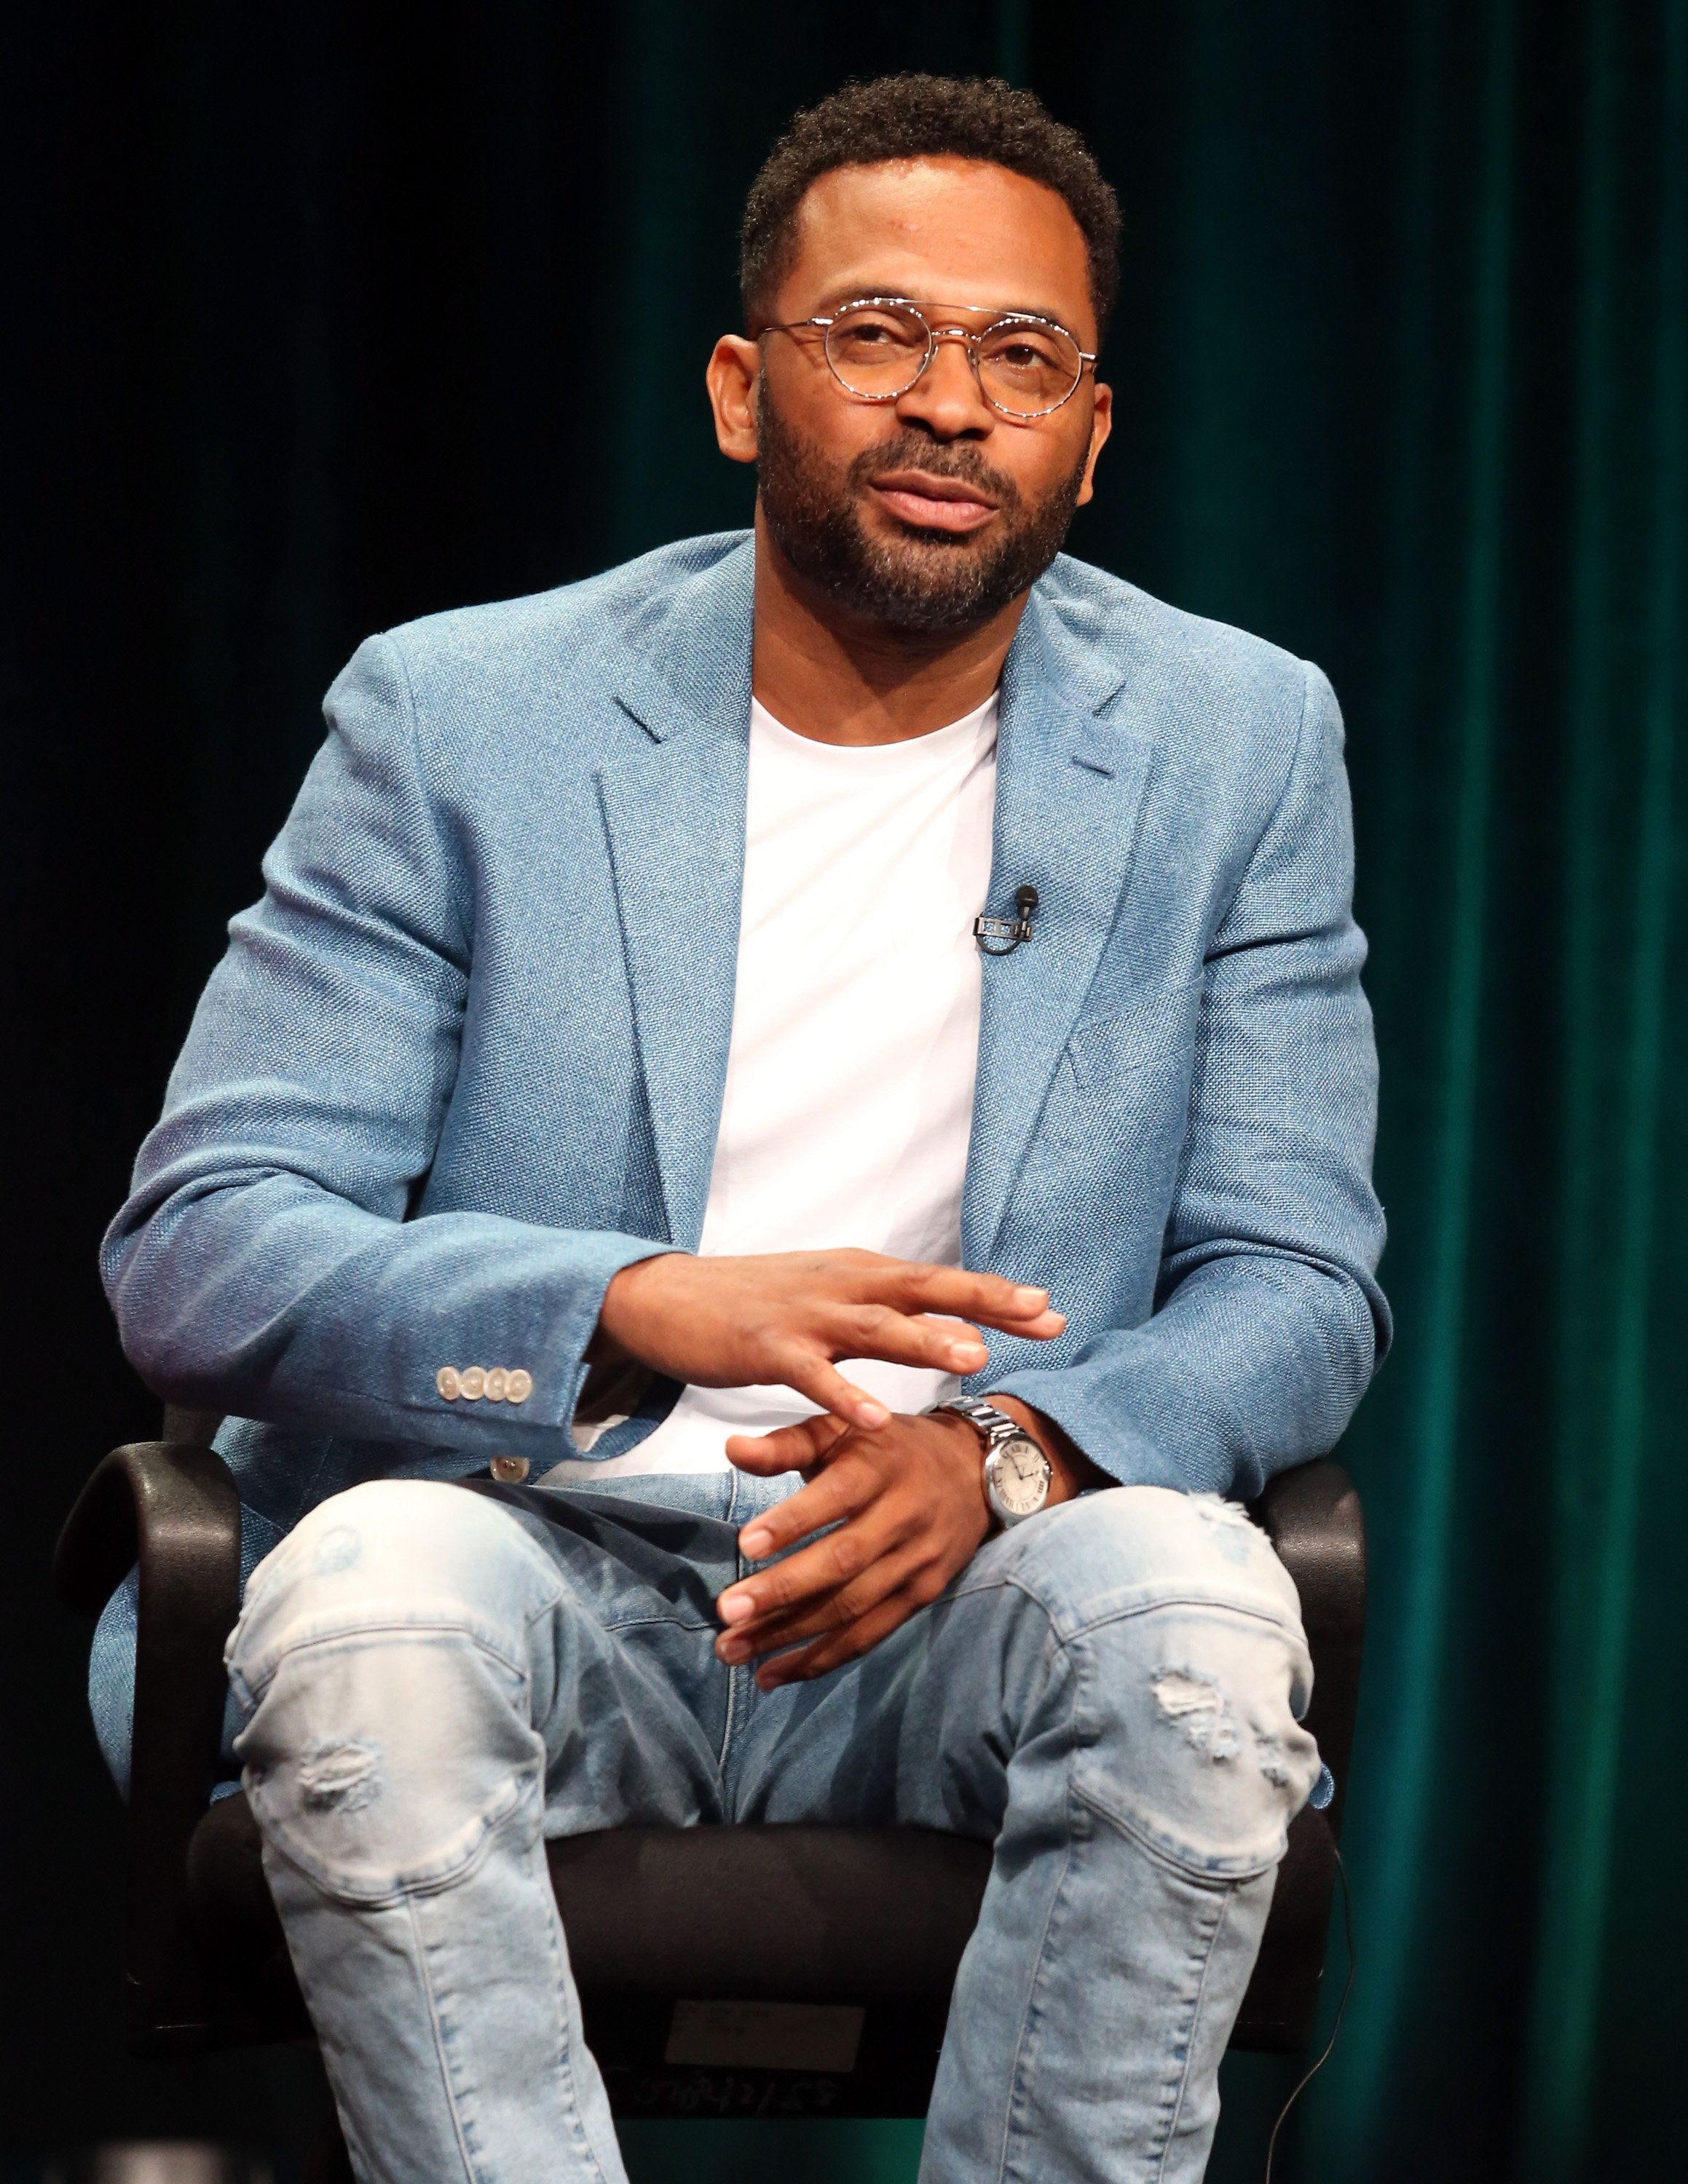 BEVERLY HILLS, CA - JULY 31:  Actor Mike Epps speaks onstage during the 'Survivor's Remorse' panel discussion at the STARZ portion of the 2015 Summer TCA Tour at The Beverly Hilton Hotel on July 31, 2015 in Beverly Hills, California.  (Photo by Frederick M. Brown/Getty Images)